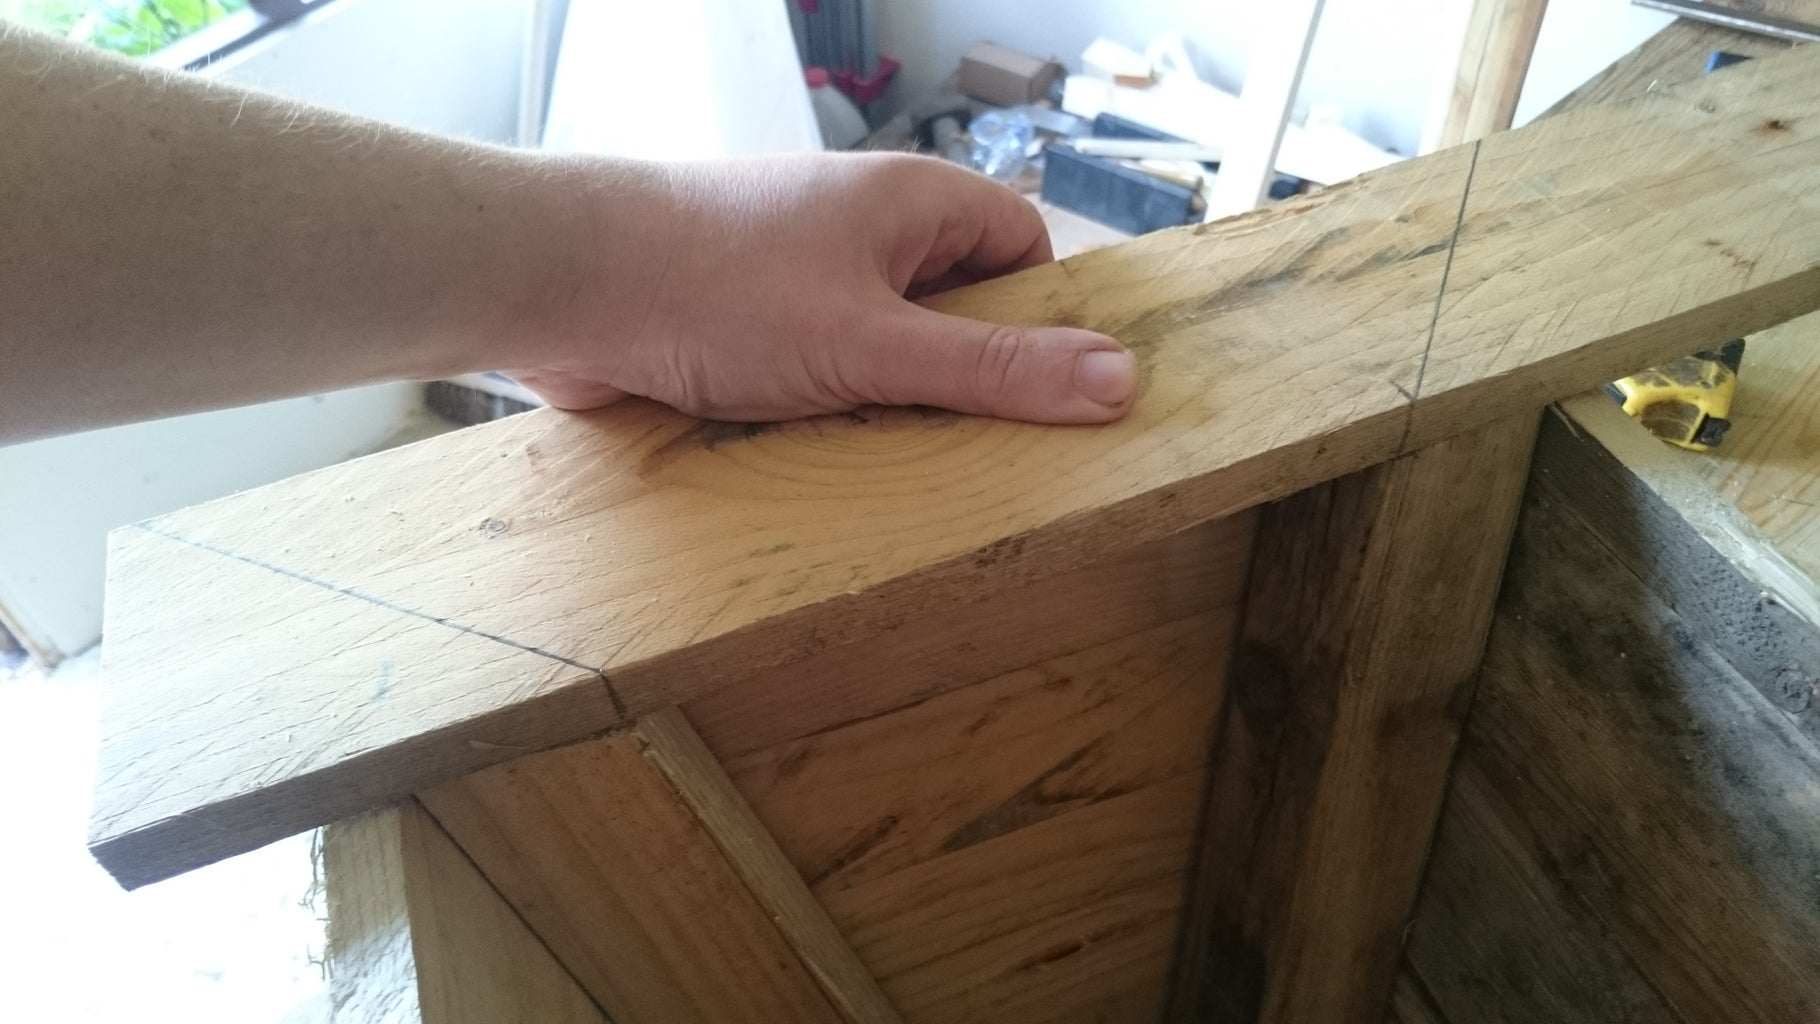 Cutting and Attaching the Top